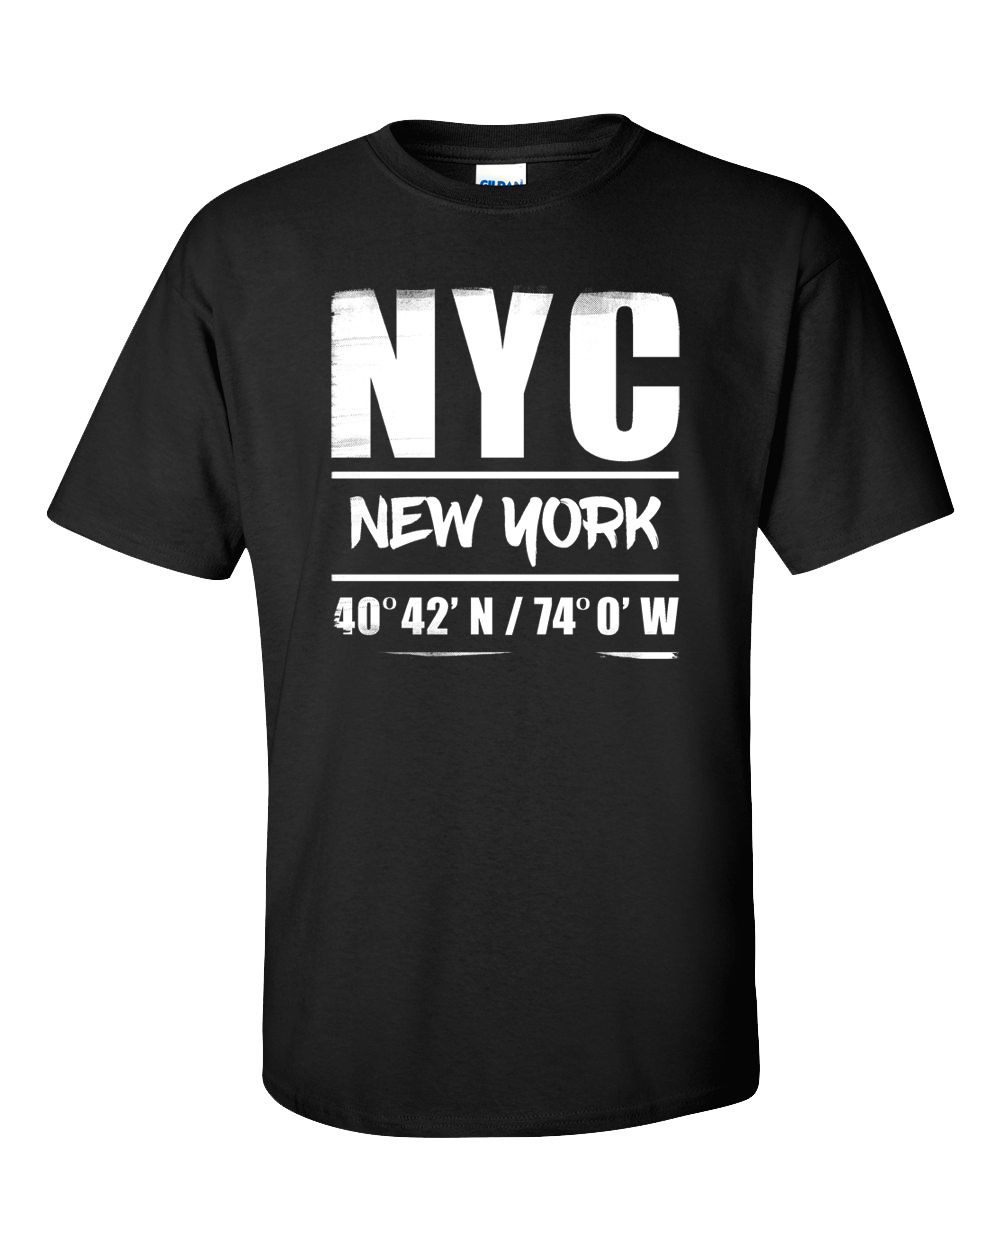 New York City T Shirt NYC Cities States US Coordinates